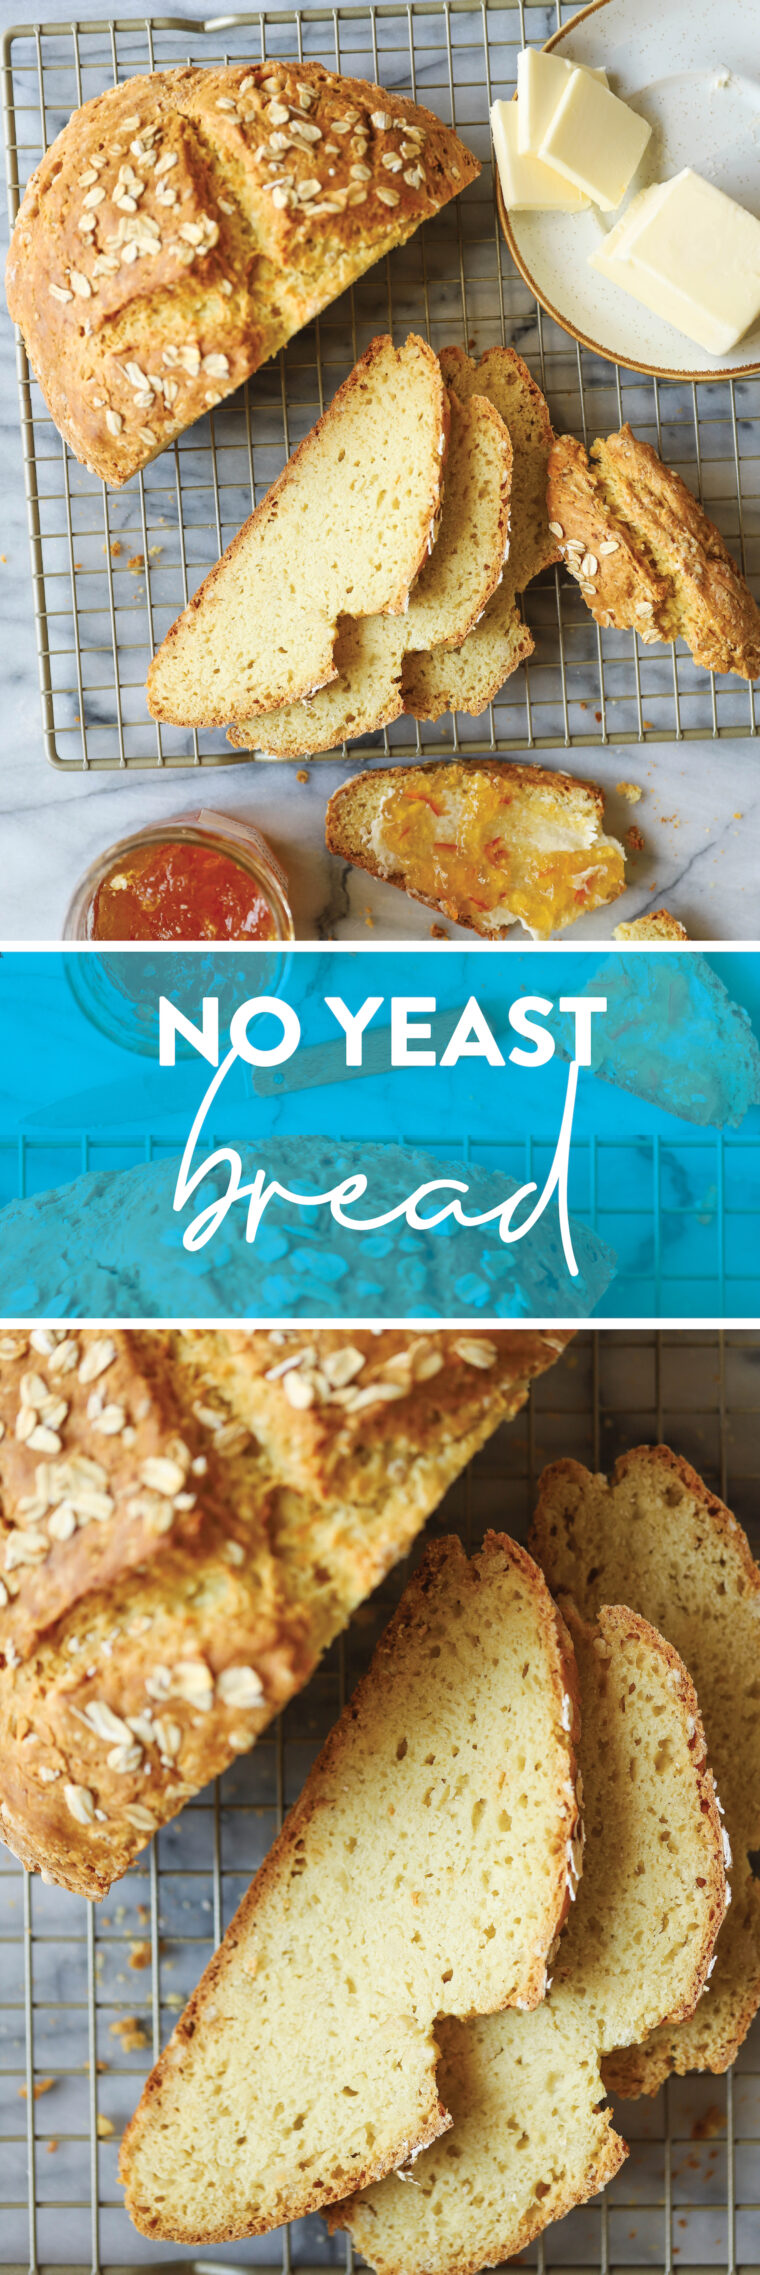 No Yeast Bread Yes, you can make beautiful homemade rustic bread without yeast, proof or rise.  Made quickly + easily.  And very good.